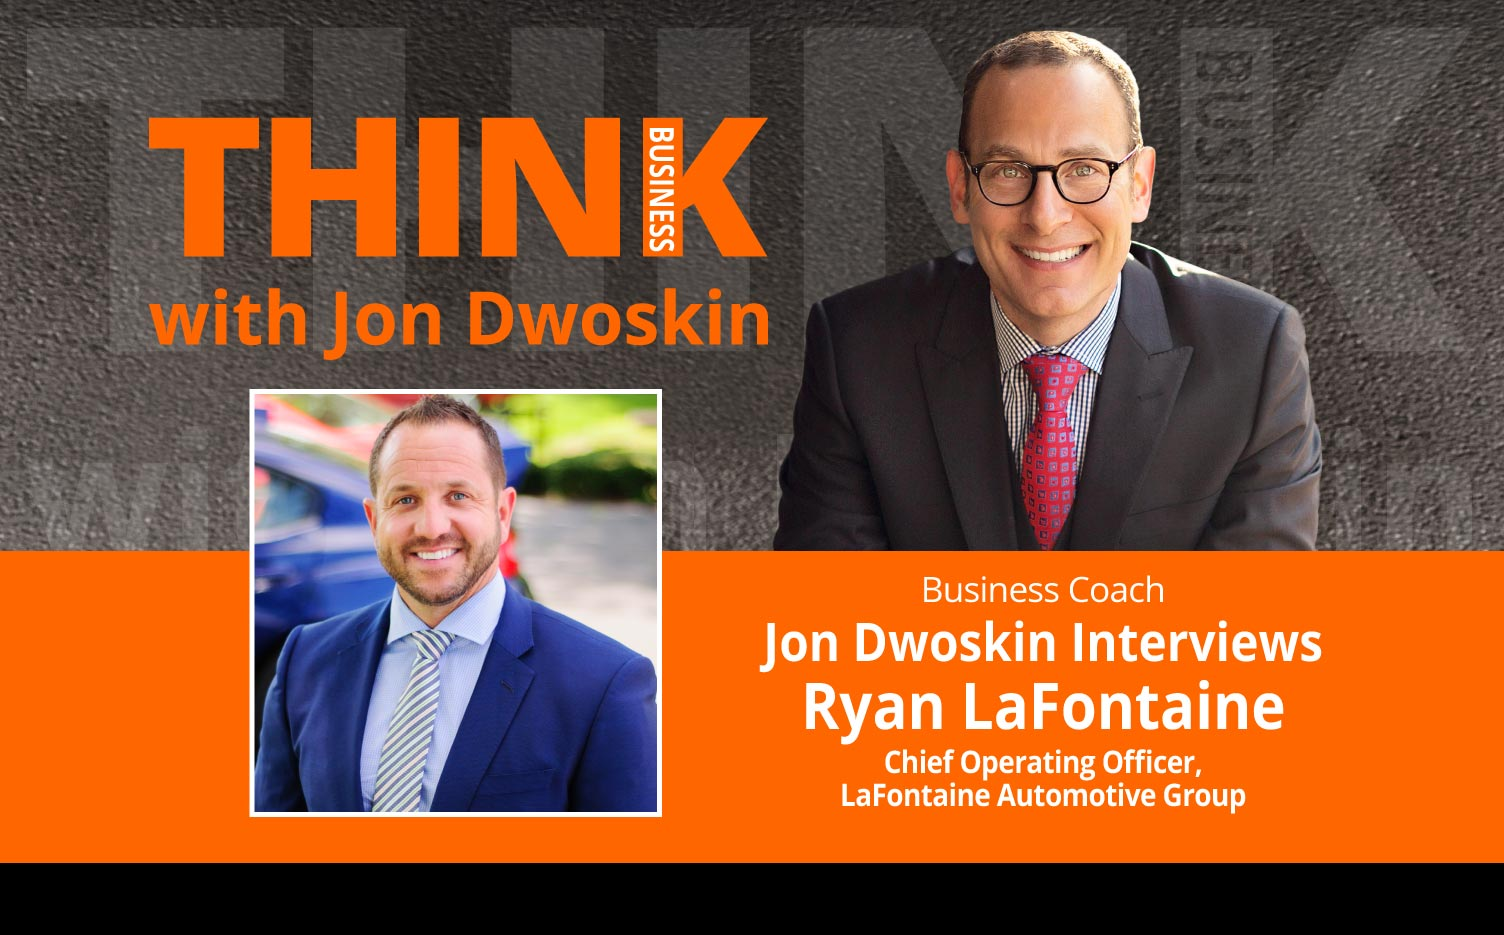 THINK Business Podcast: Jon Dwoskin Interviews Ryan LaFontaine, Chief Operating Officer, LaFontaine Automotive Group